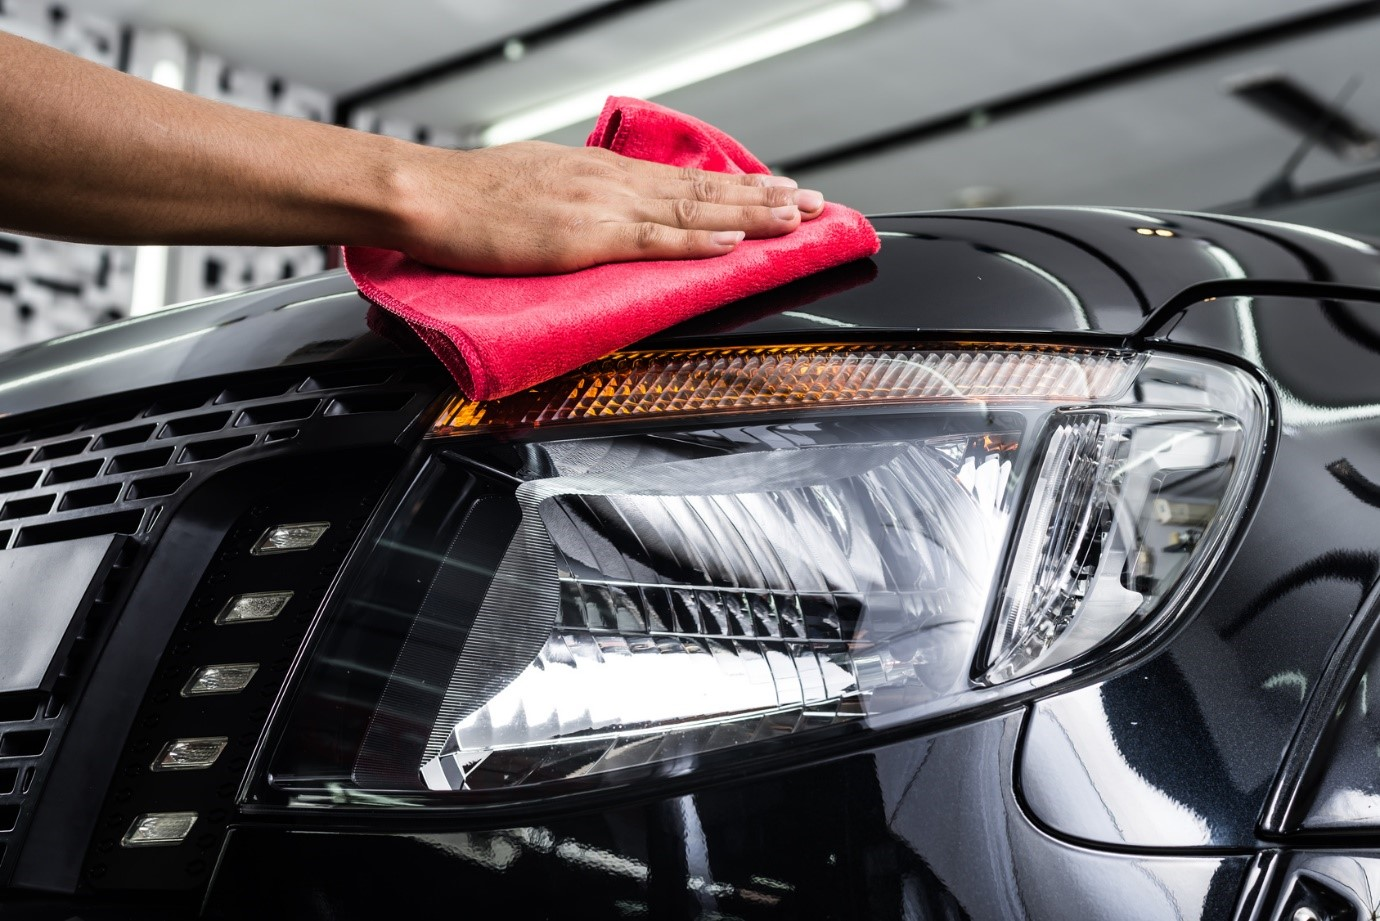 Get Your Hands On The Best Car Detailing Products Bulk Wholesale